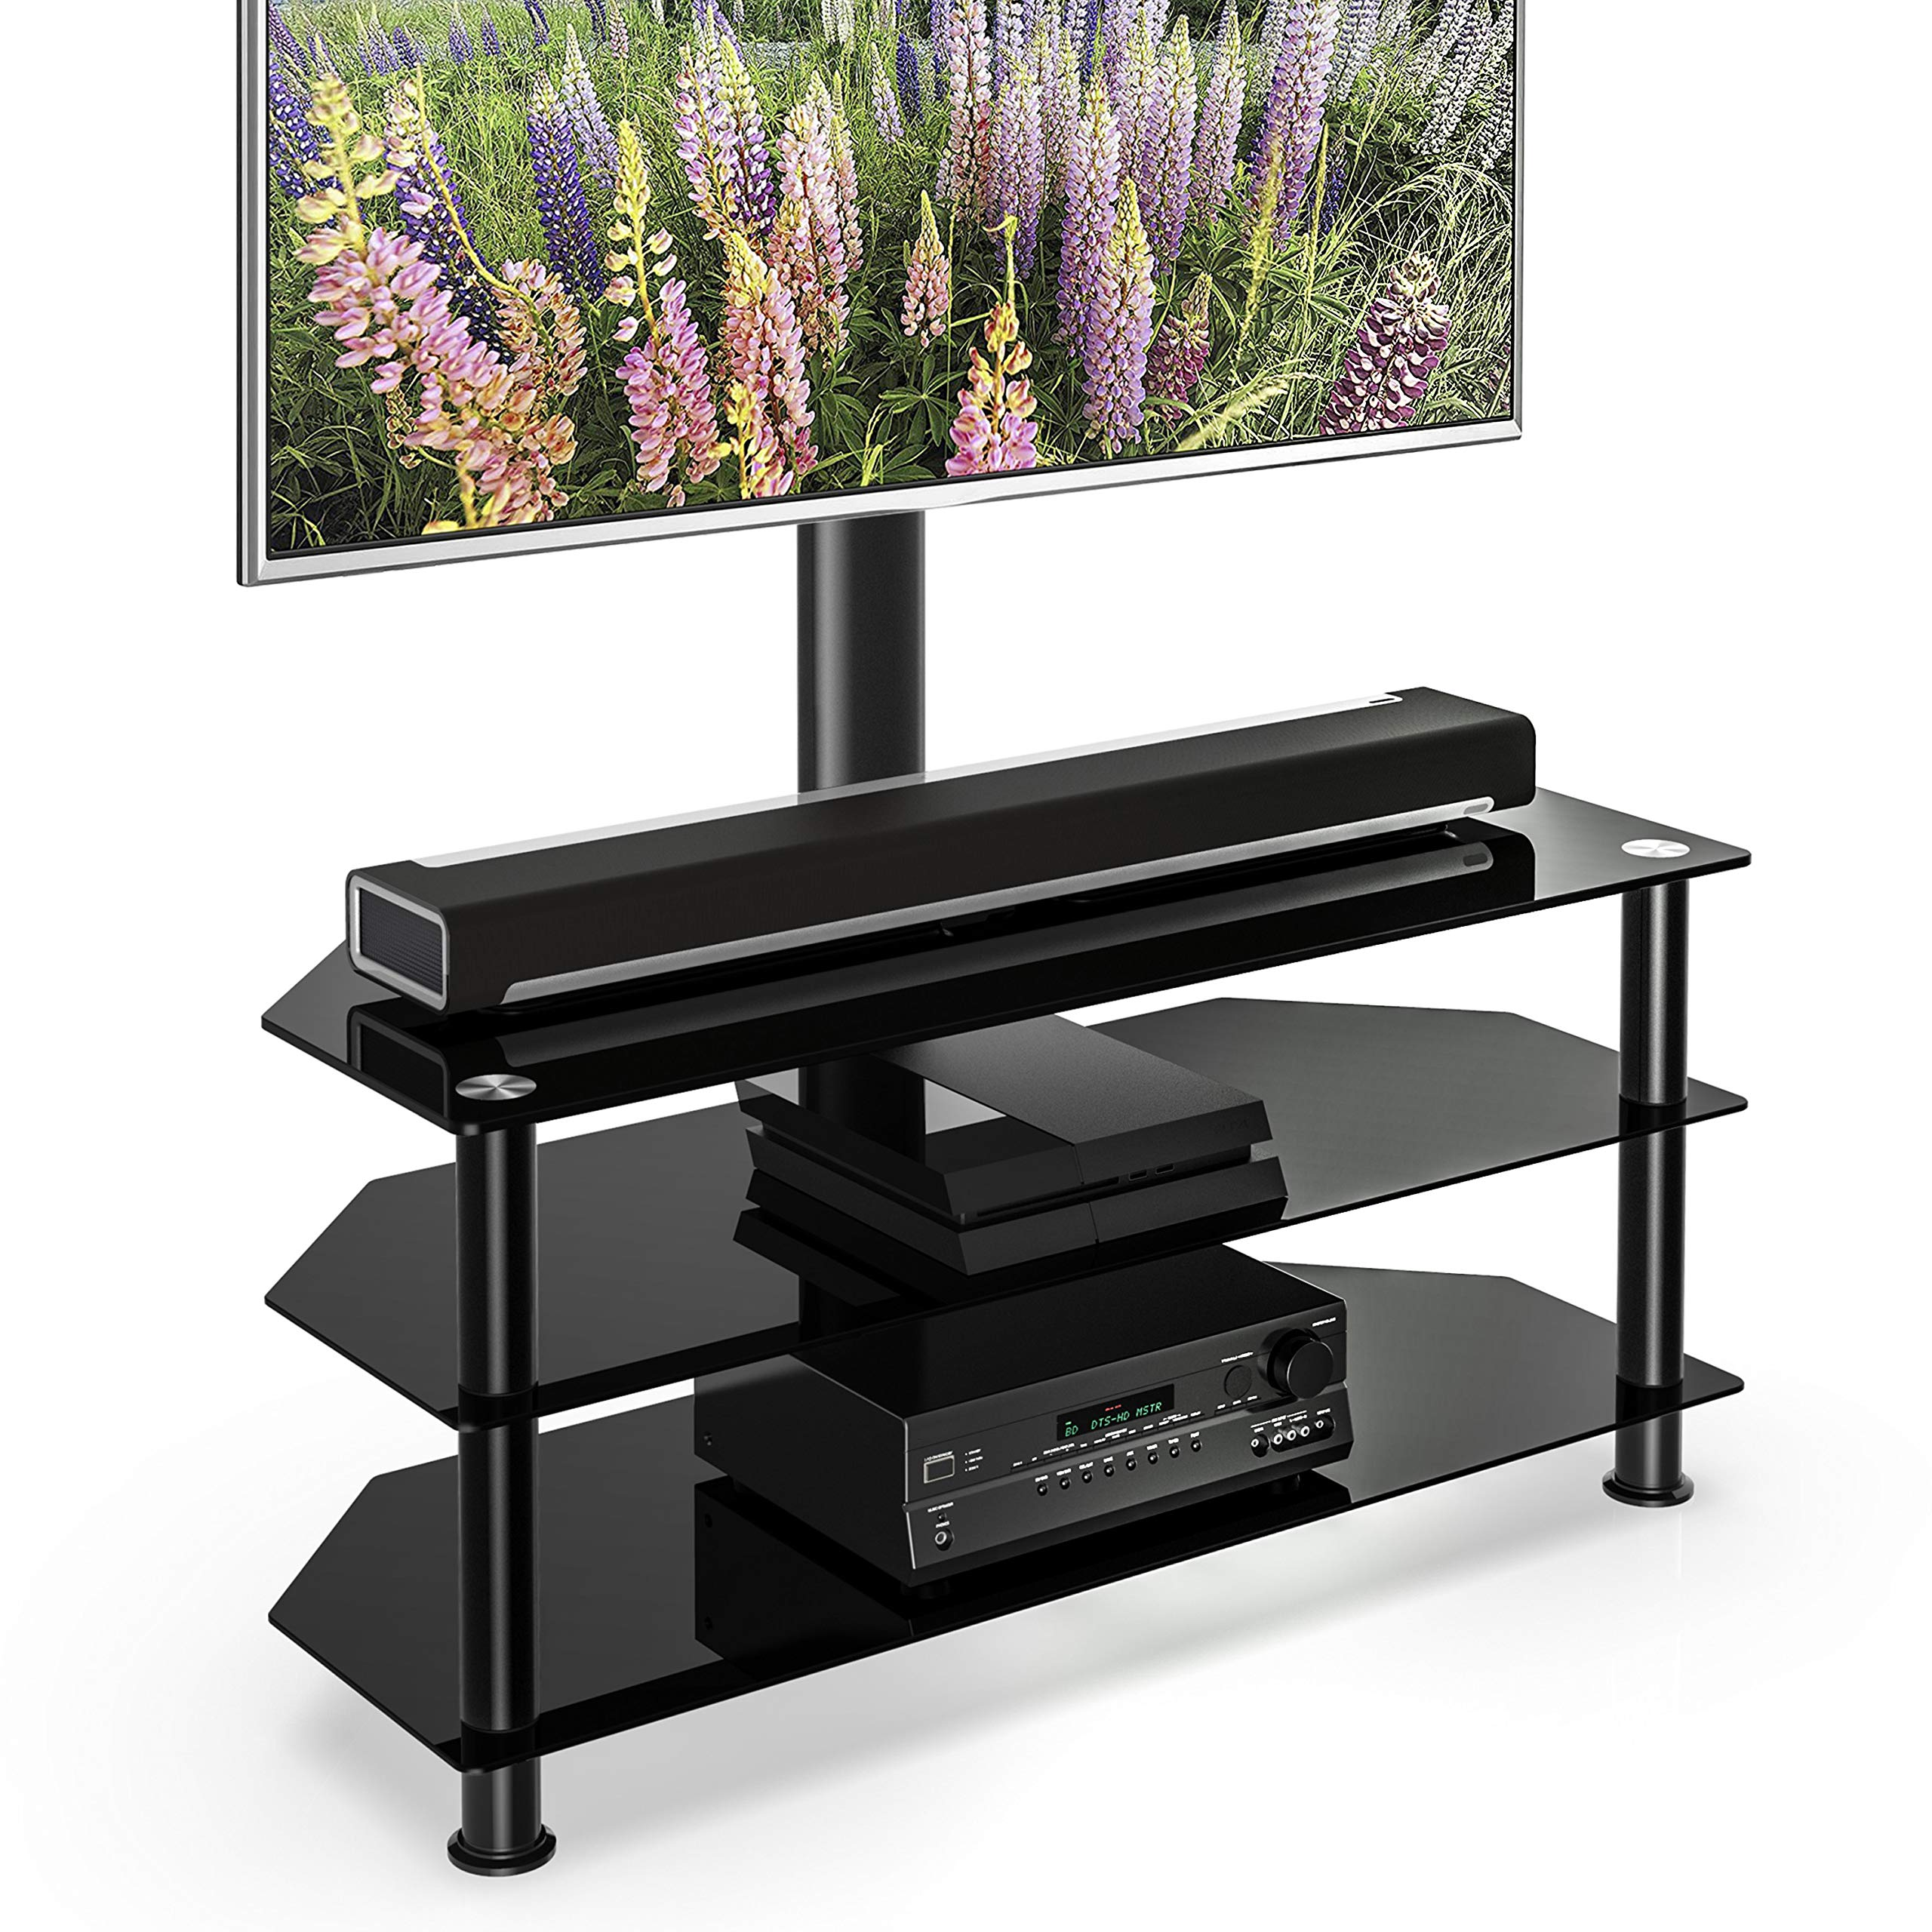 FITUEYES Floor TV Stand with Swivel Mount Height Adjustable 3-in-1 TV Stand Base Entertainment Stand for 32 to 65 inch Plasma LCD LED Flat or Curved Screen TVs TW307501MB by FITUEYES